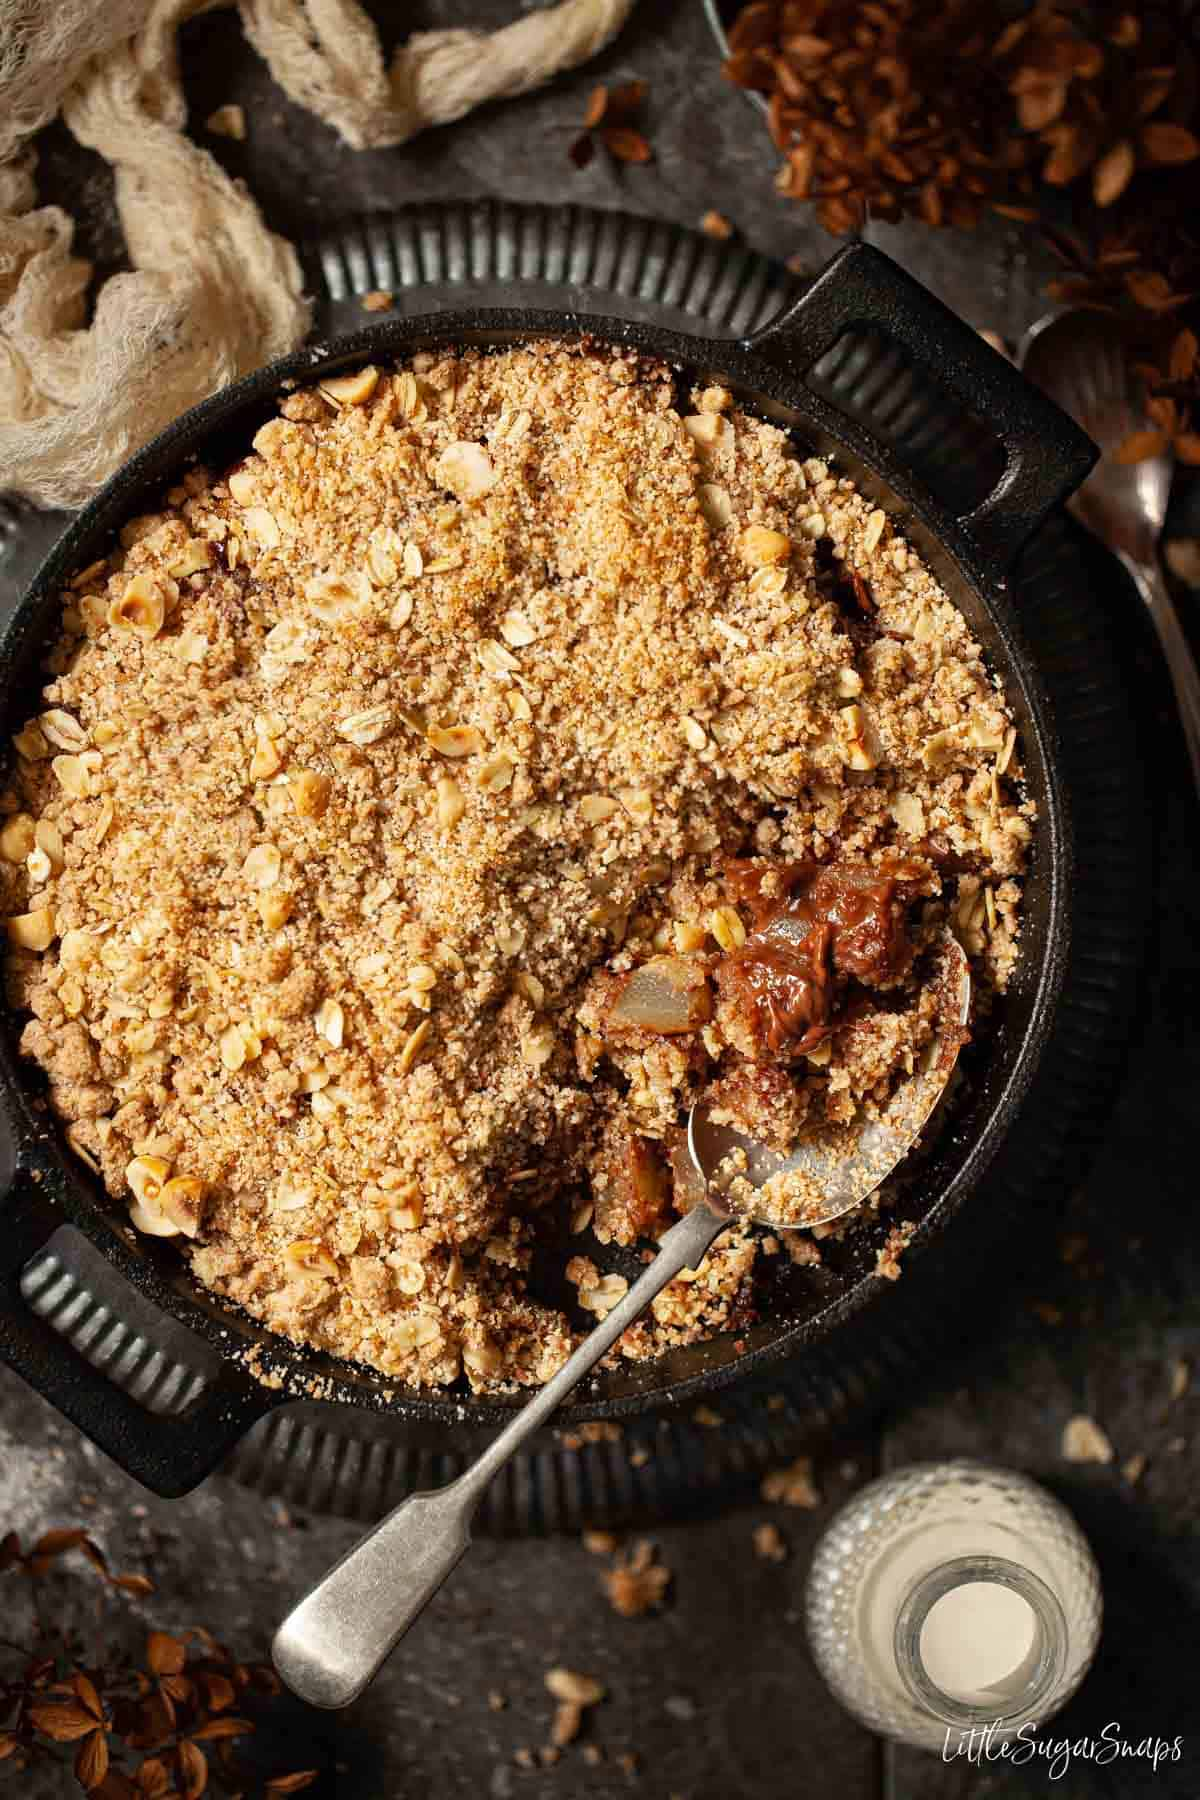 Chocolate and pear crumble in a cast iron skillet with a serving spoon in it